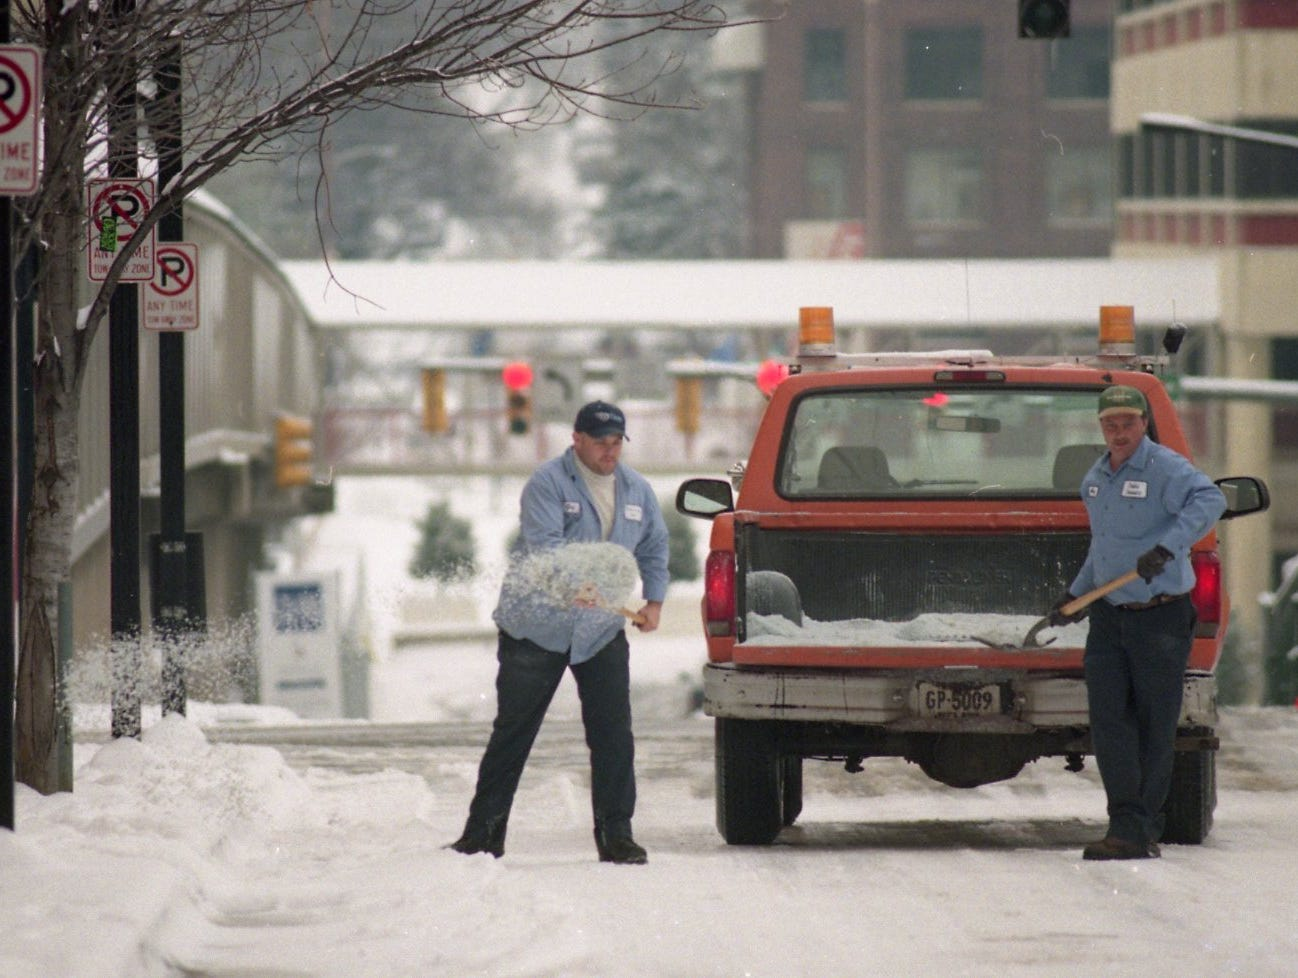 Knoxville City Public Service Department employees Greg Long and Wayne Miley said that they spread six pickup loads of salt from midnight until 10:00 a.m. by hand in January 2000. In addition to spreading salt, the two also helped several stranded motorists during the storm.